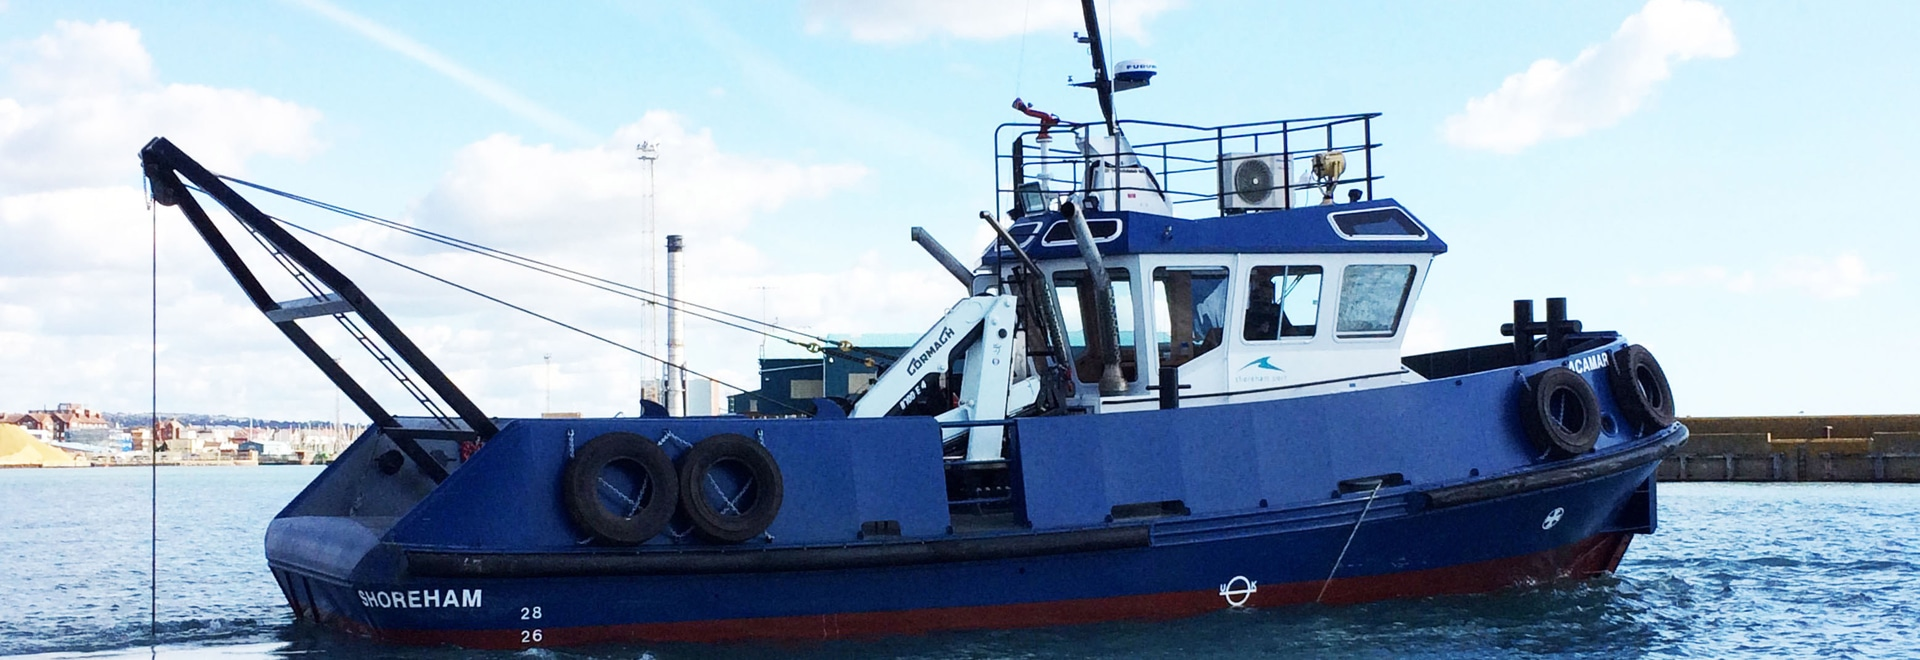 Acamar is a new a new 16 metre tug boat that was delivered to Shoreham last year